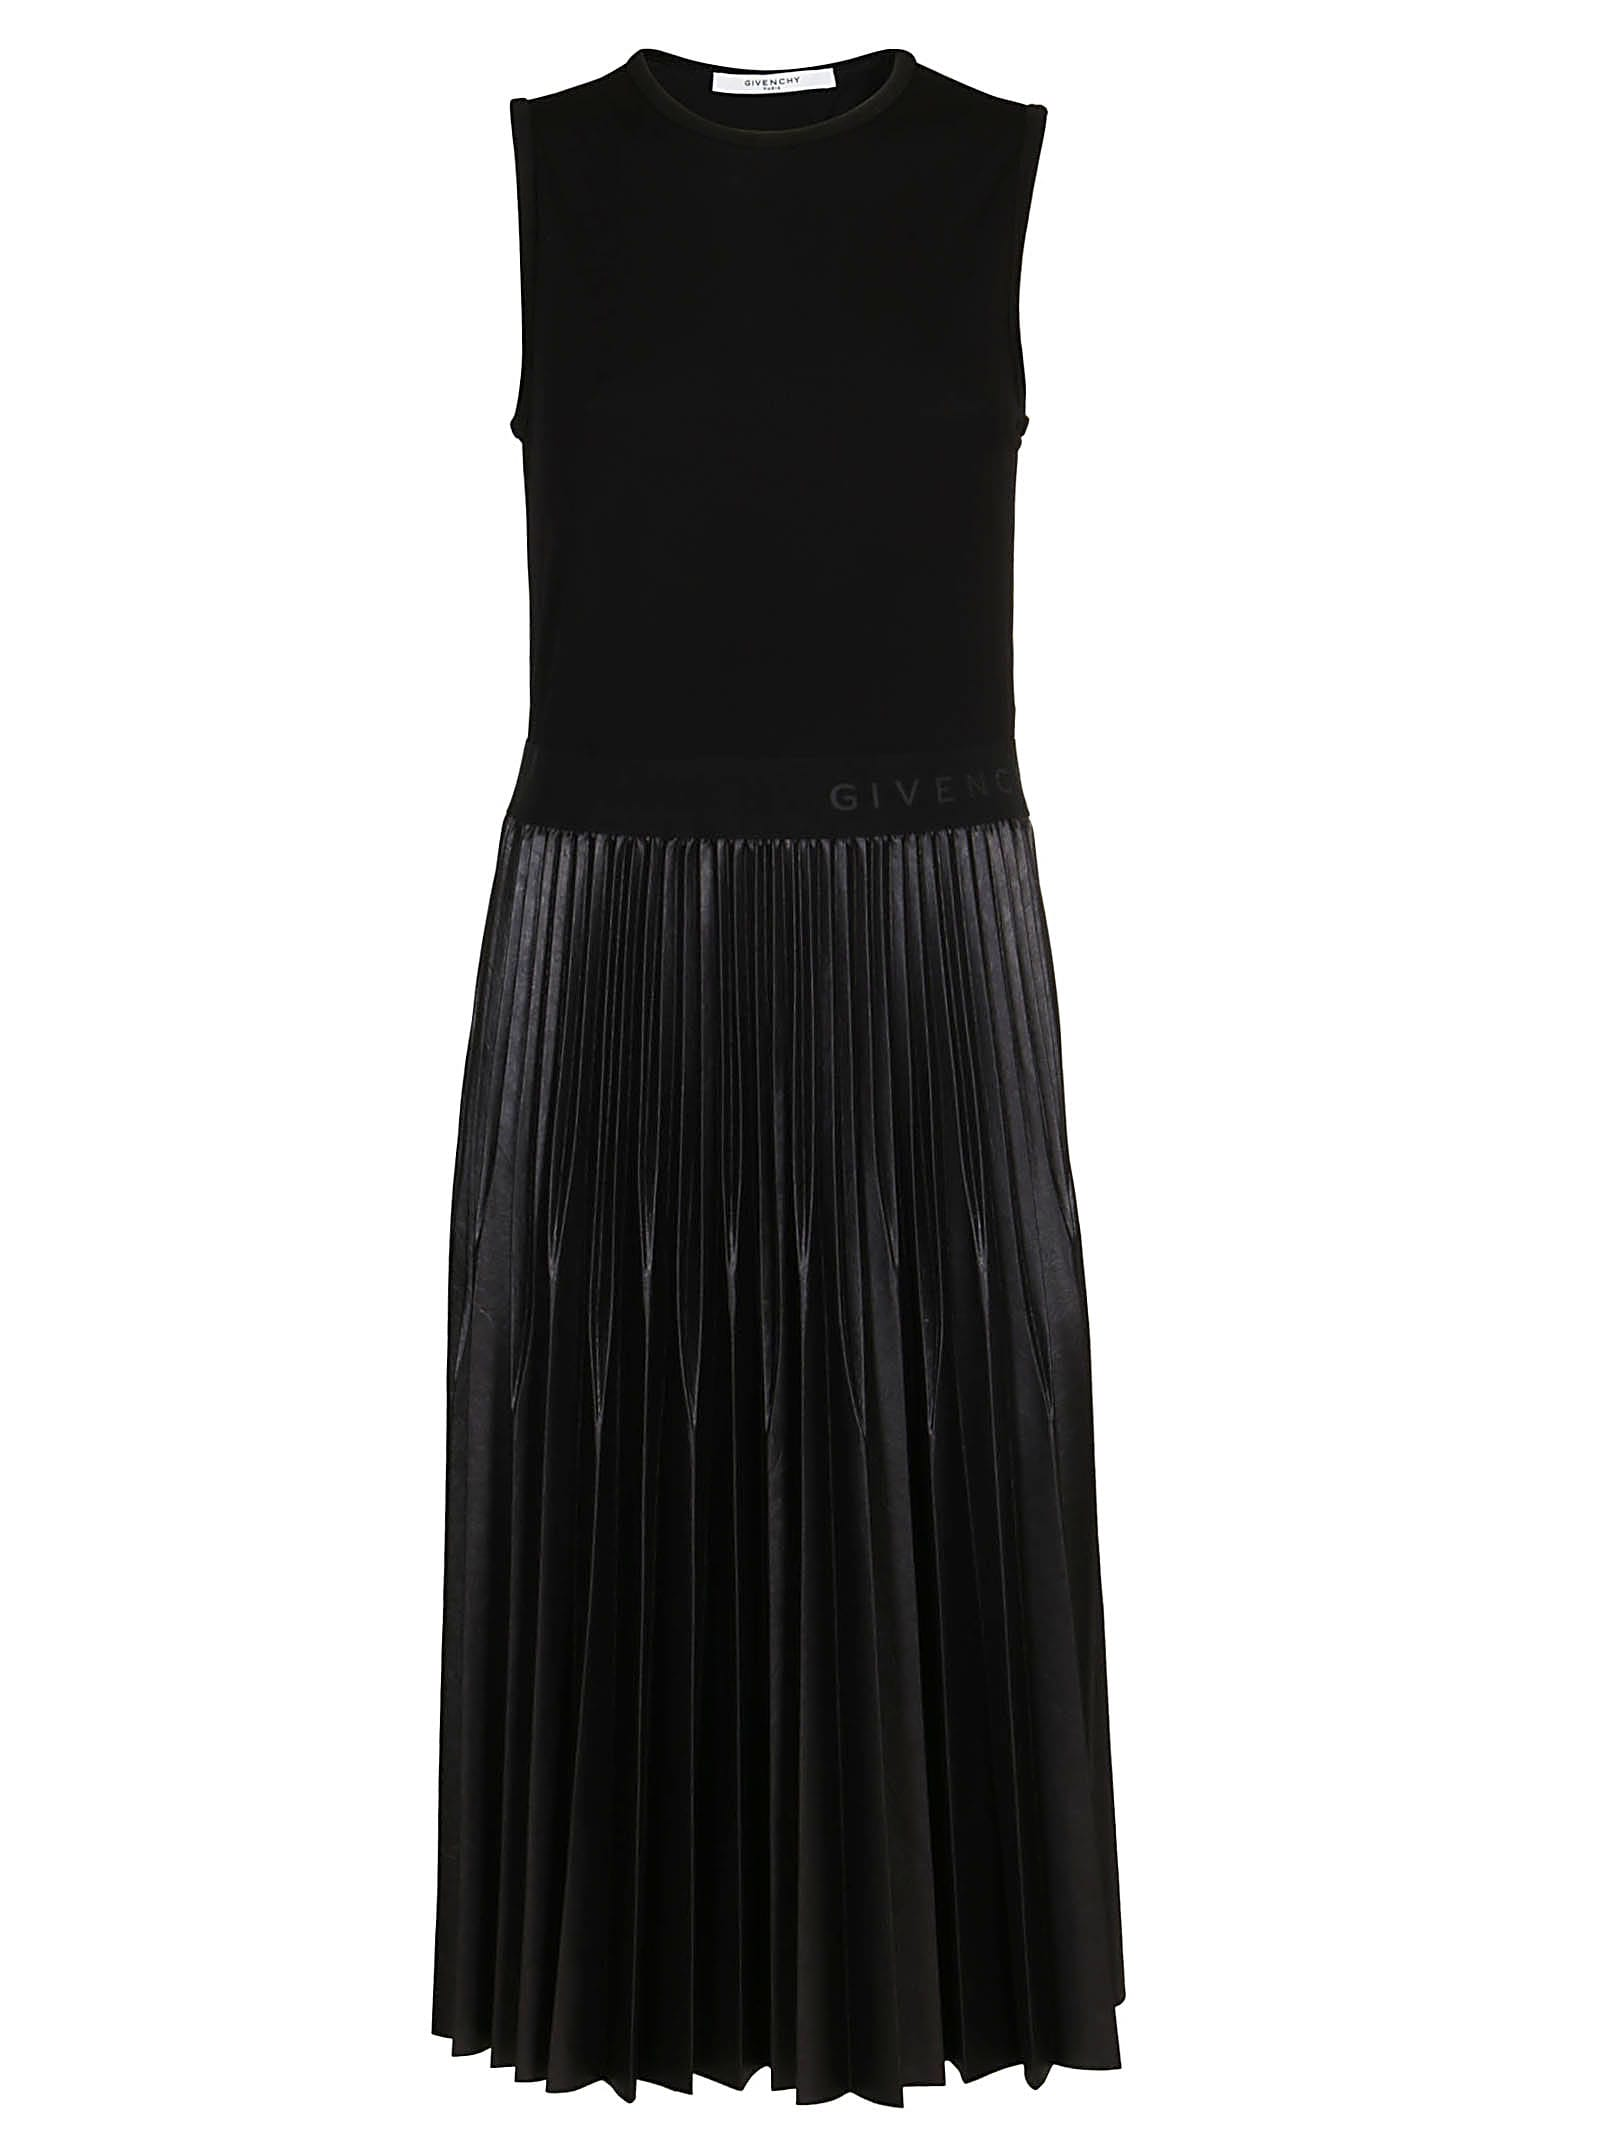 Givenchy Pleated Mid-lenght Dress